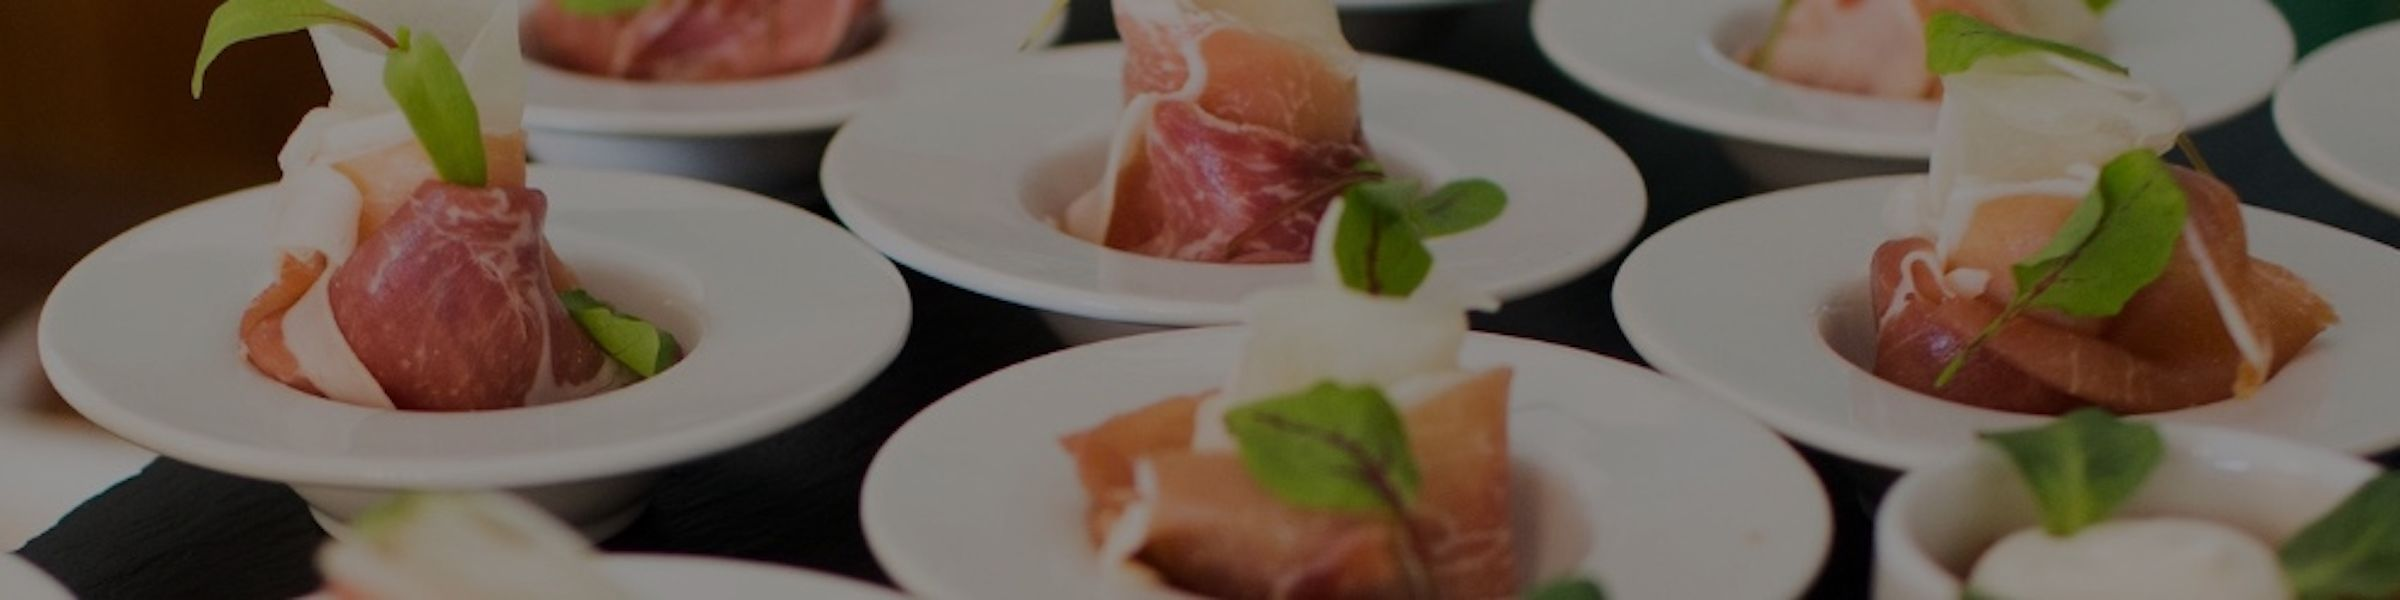 catering pros in Johannesburg